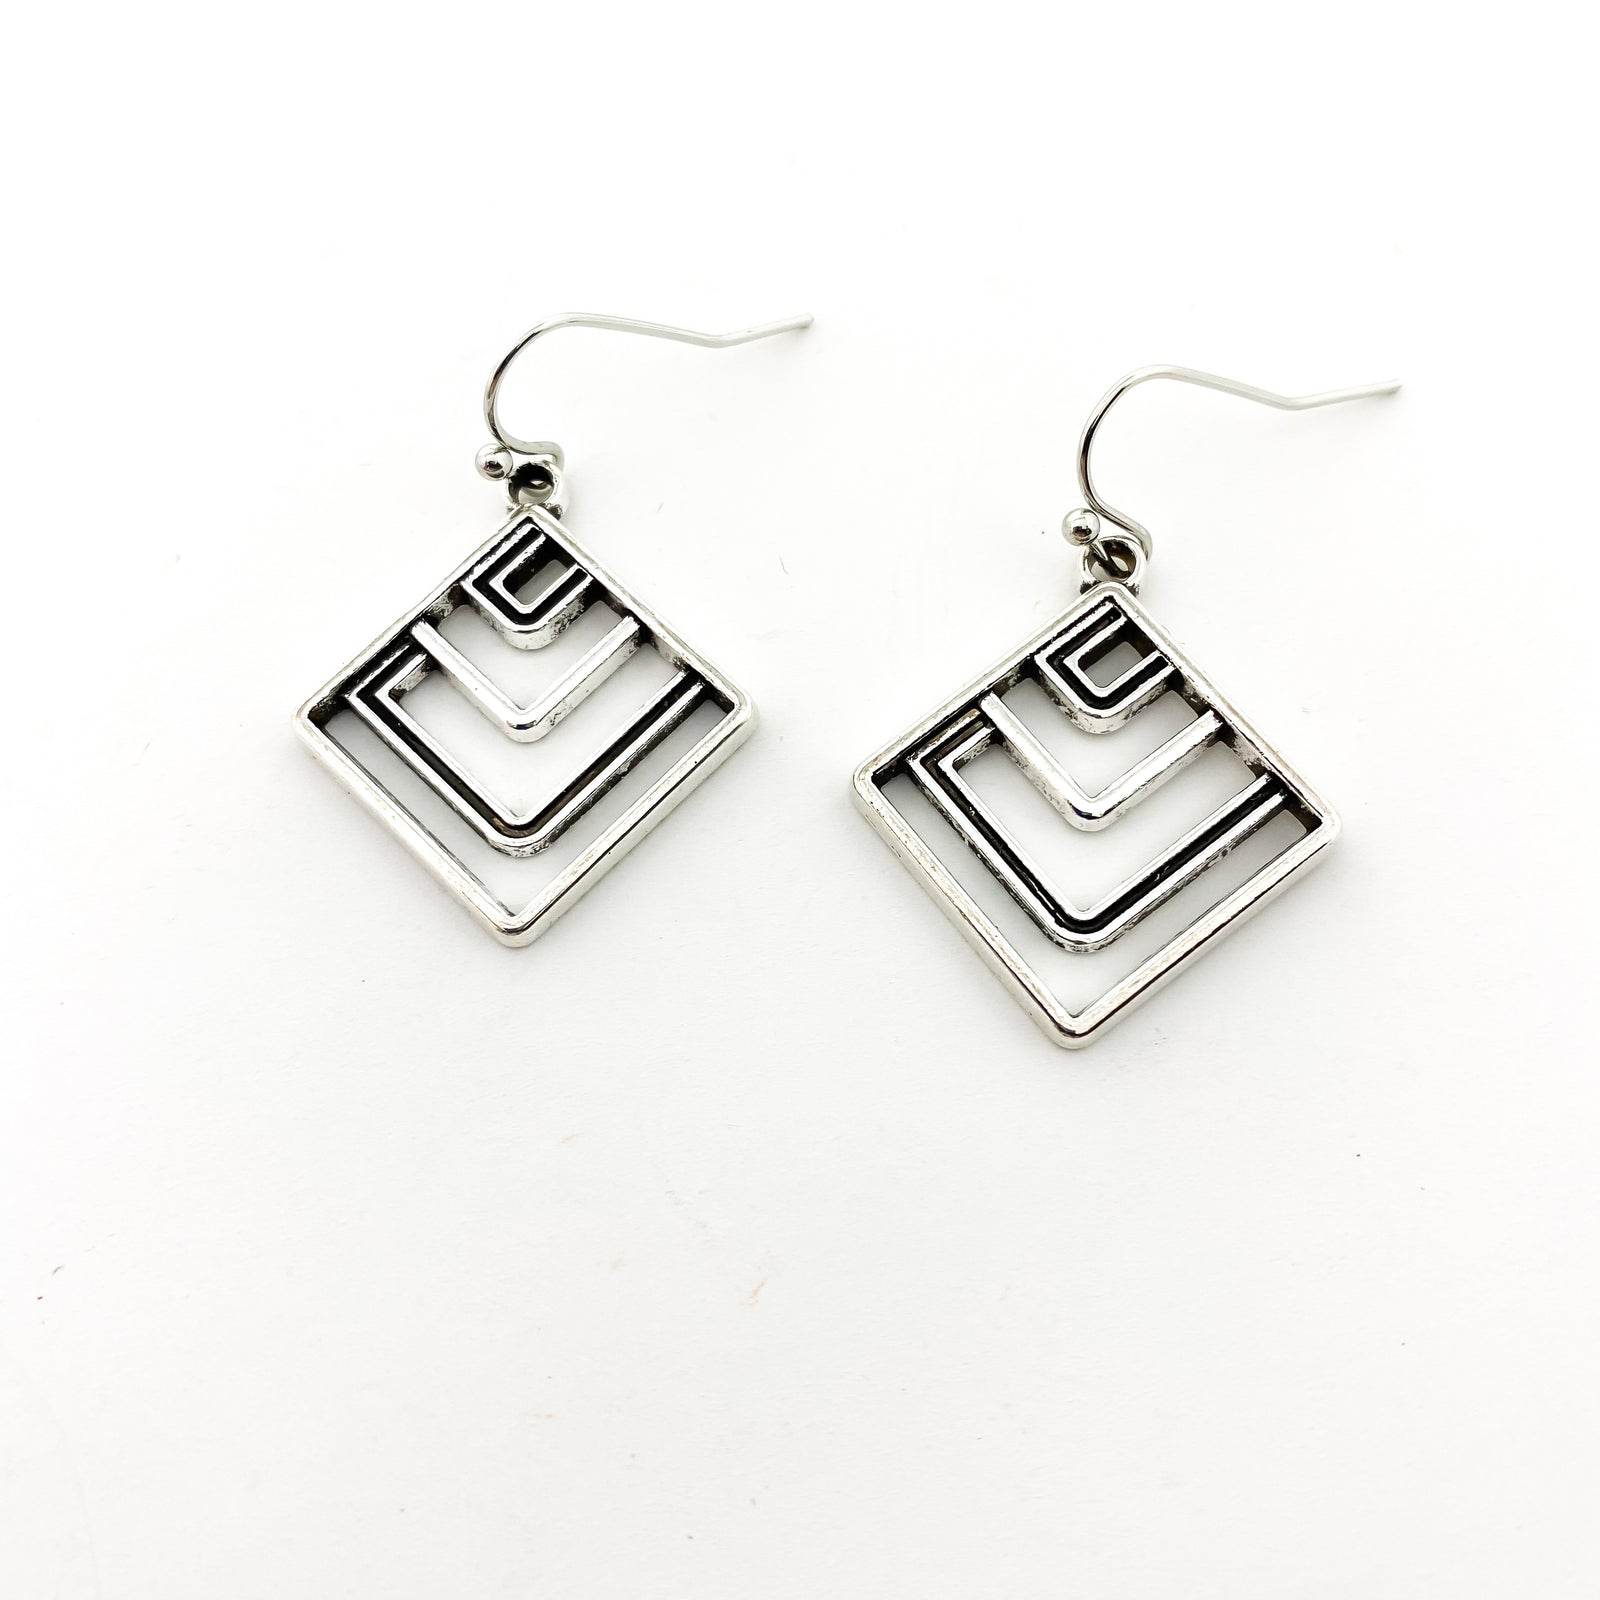 PATTERN DIAMOND SHAPE EARRINGS | SILVER